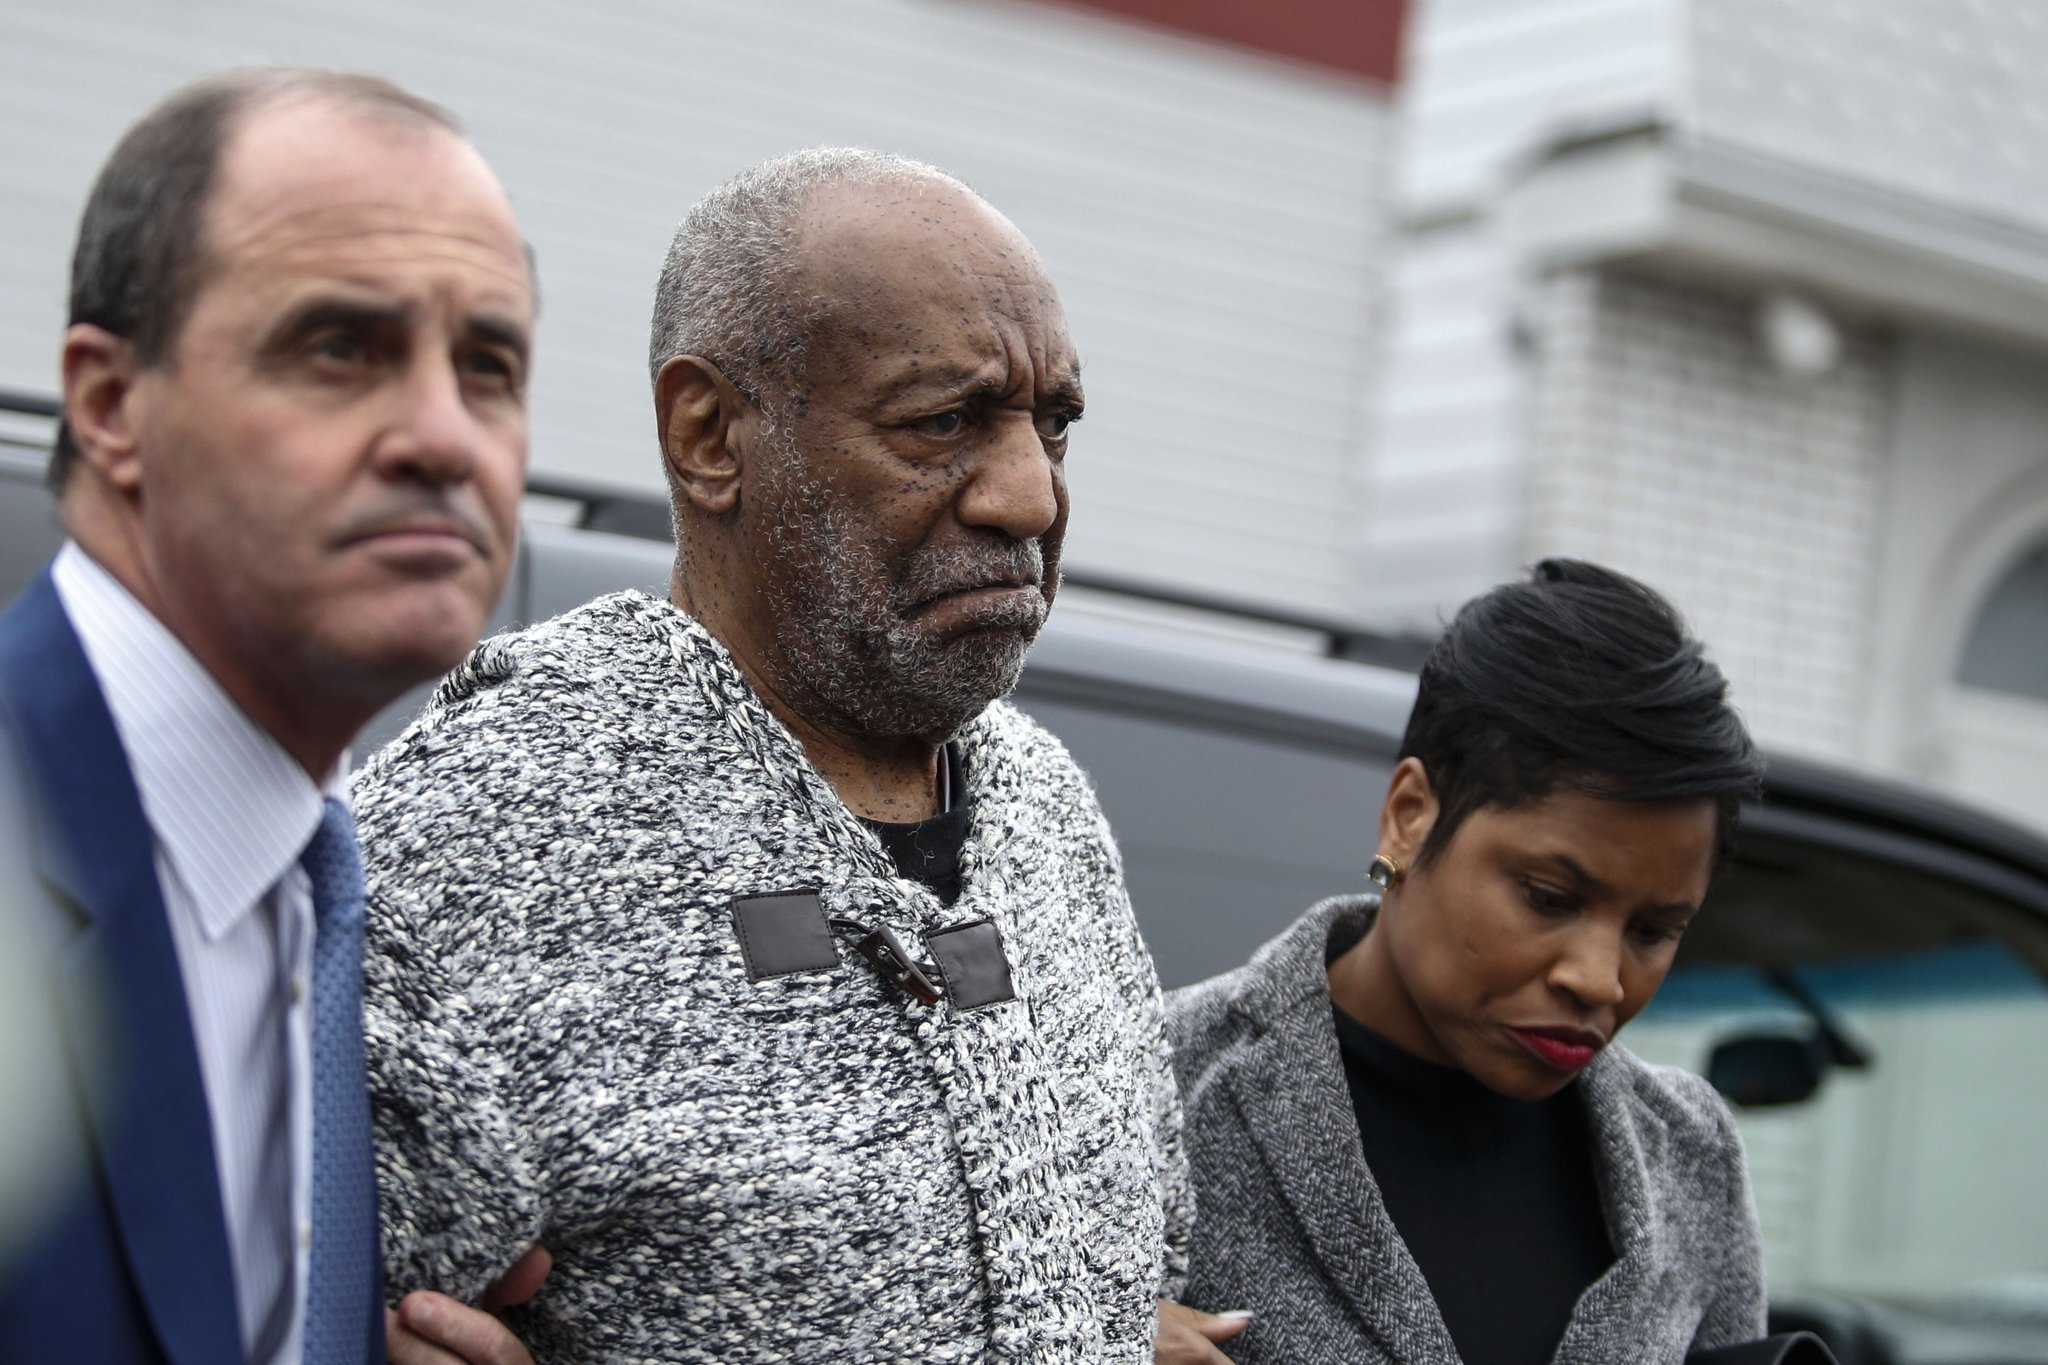 Bill Cosby's lawyer accuses prosecutor of playing politics